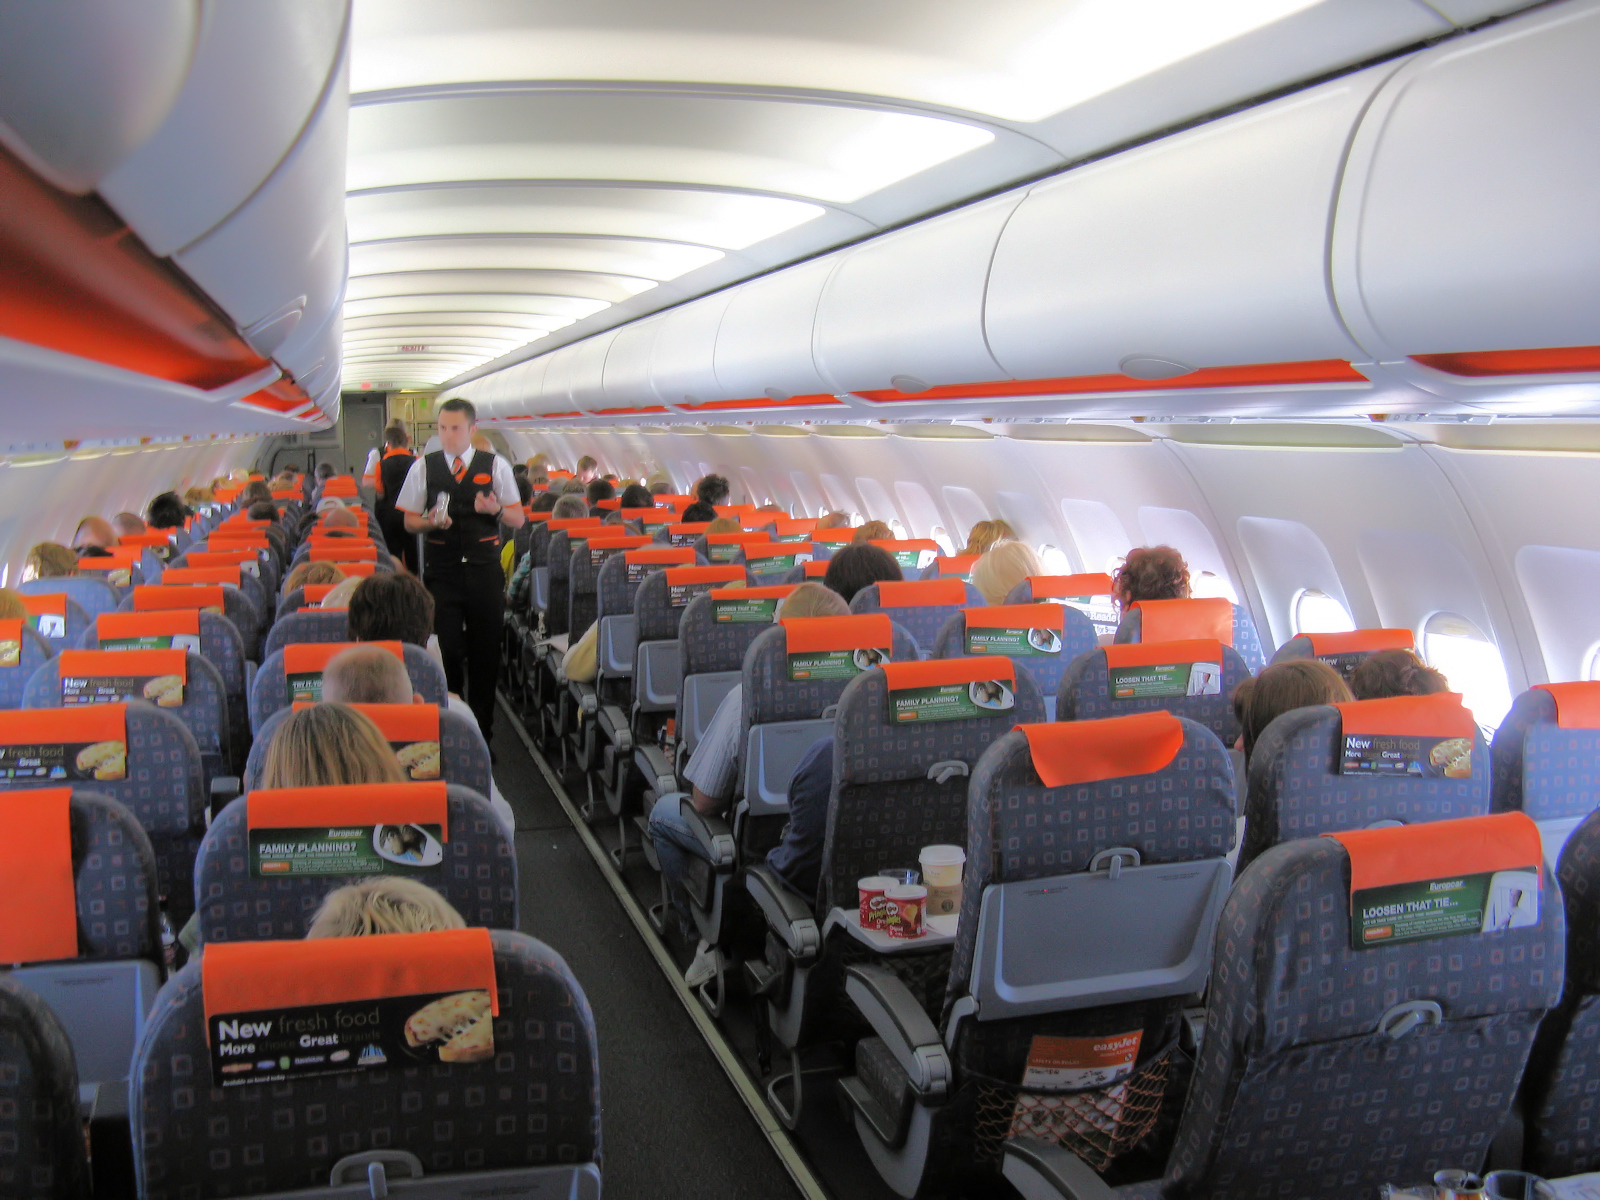 Description Easyjet a319 interior in flight arp.jpg